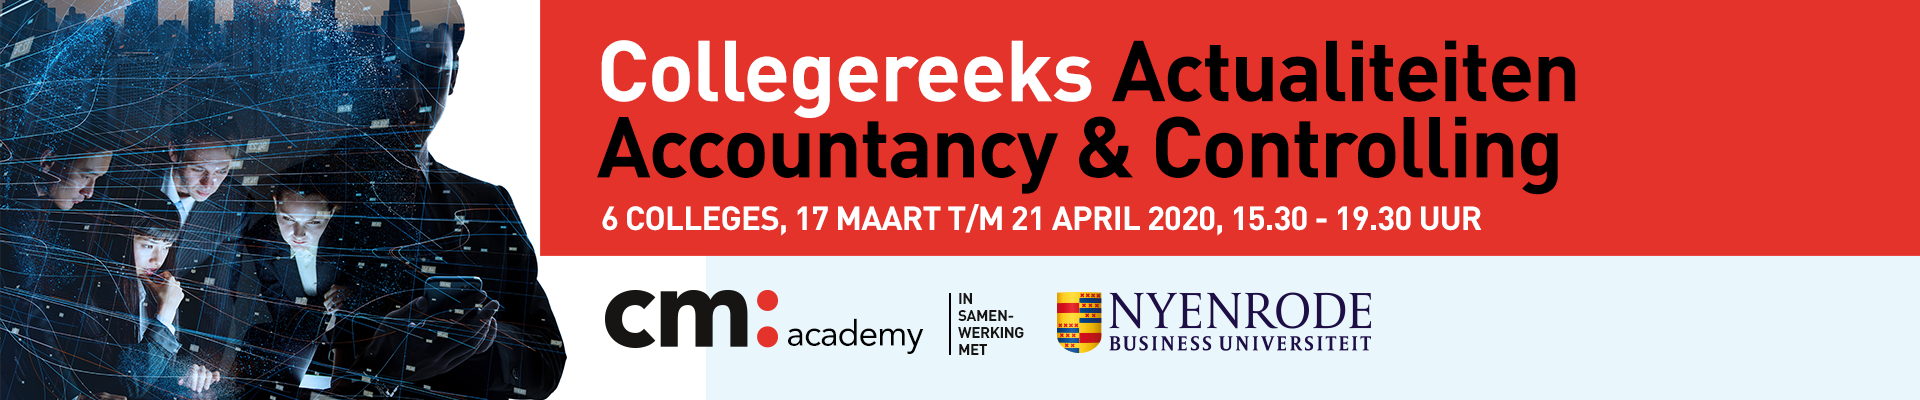 Collegereeks Actualiteiten Accountancy & Controlling 2020